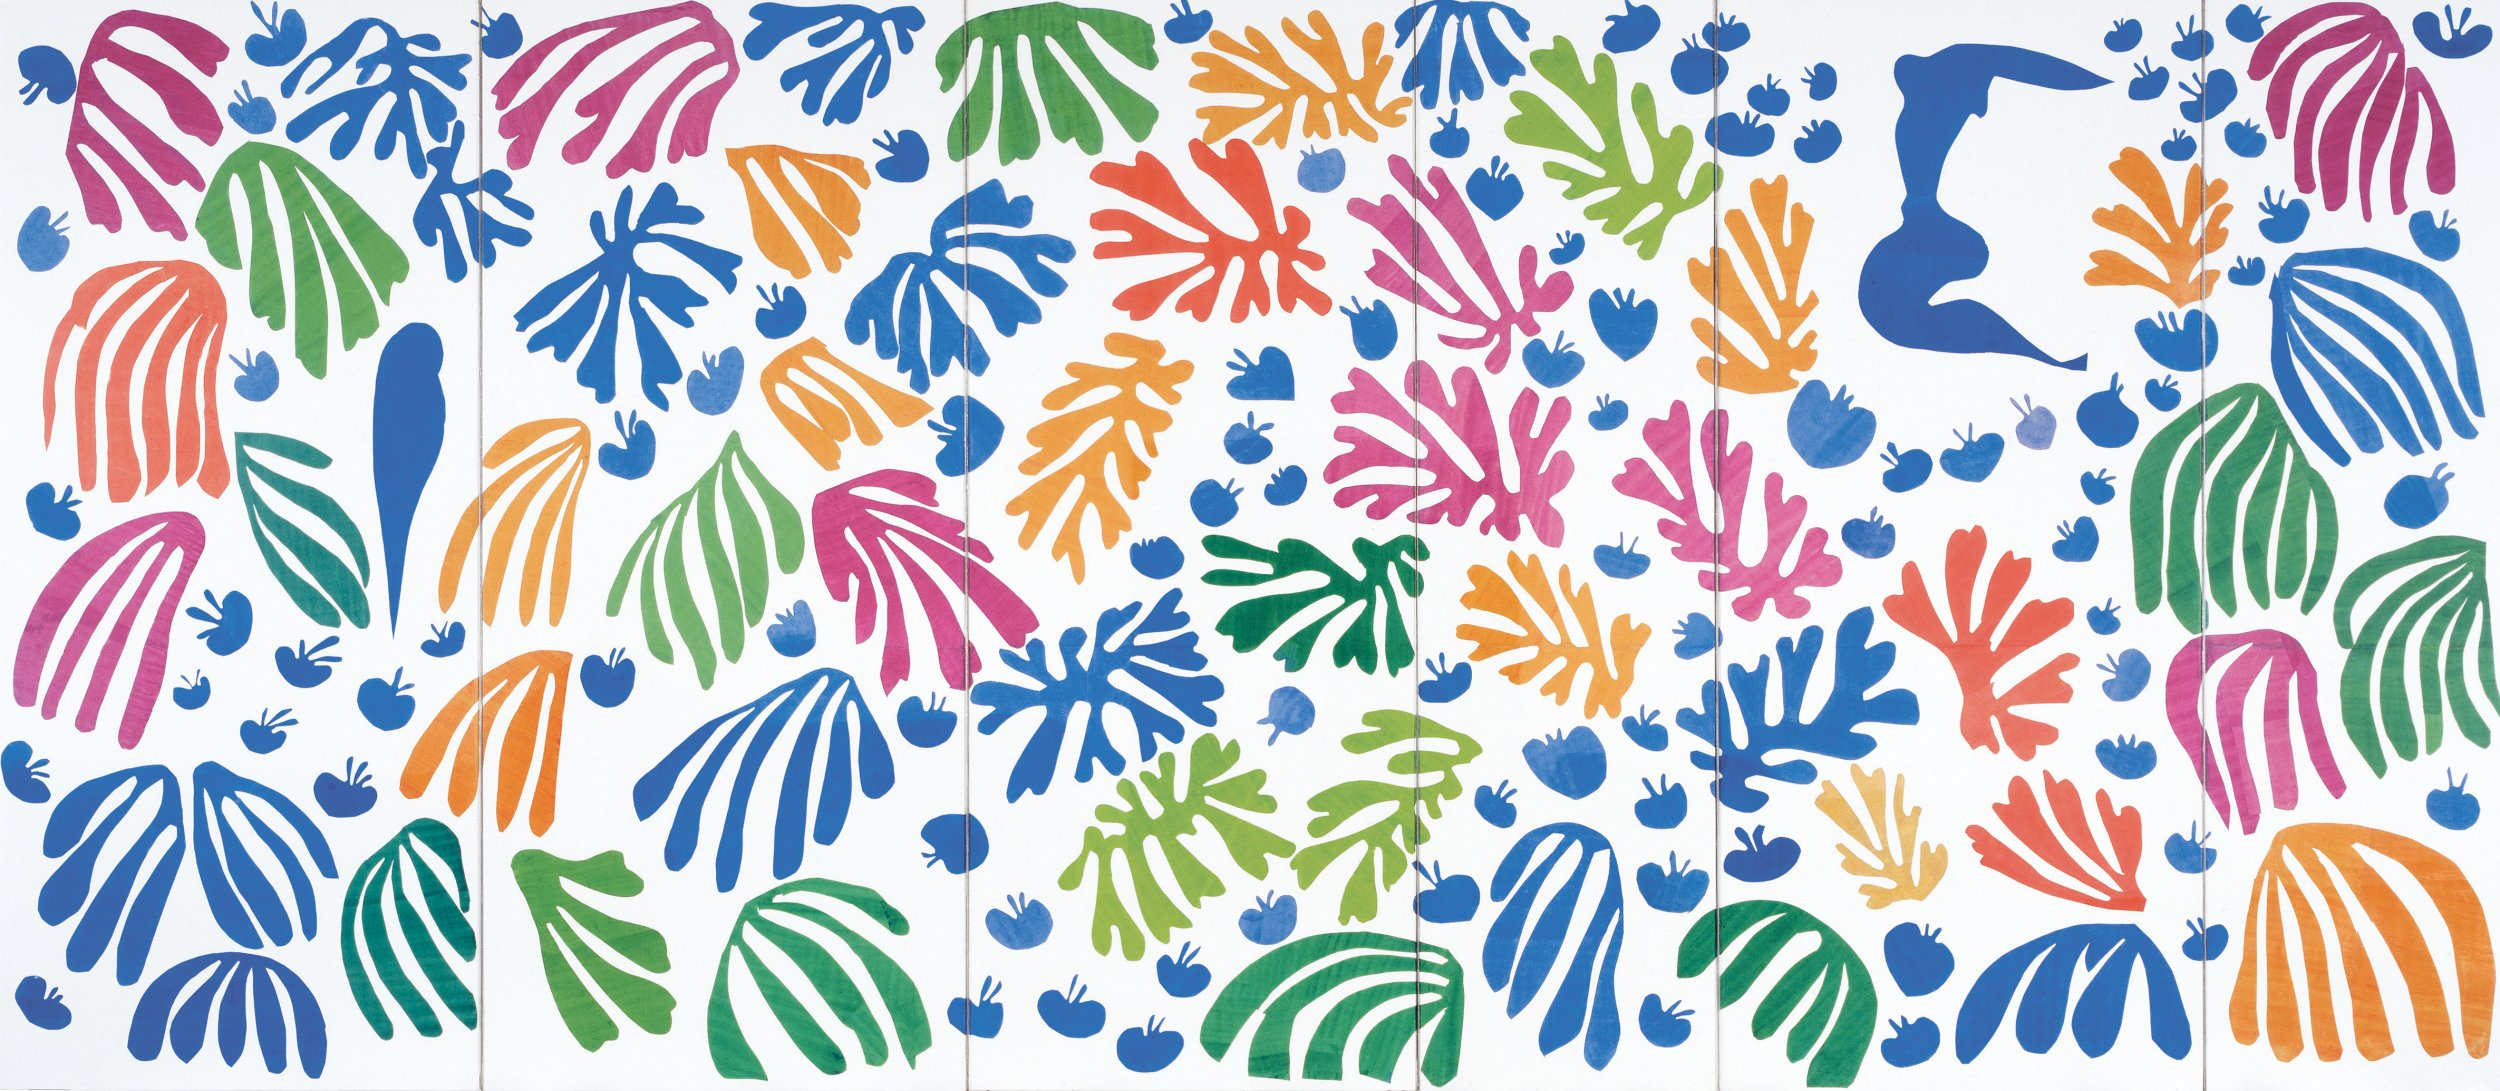 photos henri matisse cutouts the joy of painting with scissors